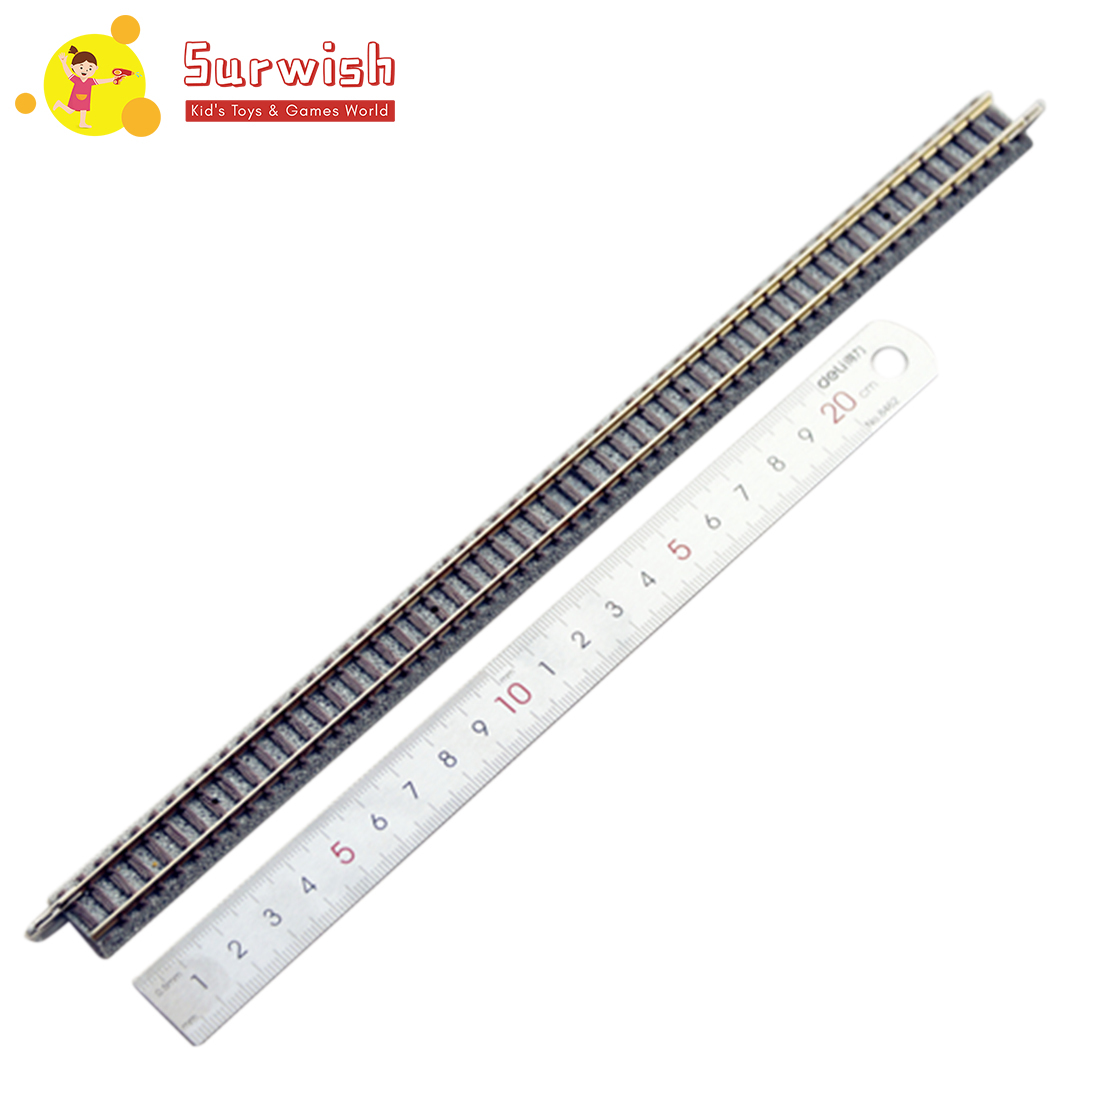 Surwish 1 Pcs 28cm 1:160 Scale S280 / S280-SL Straight Track With 9mm Gauge For N-Scale Train Model